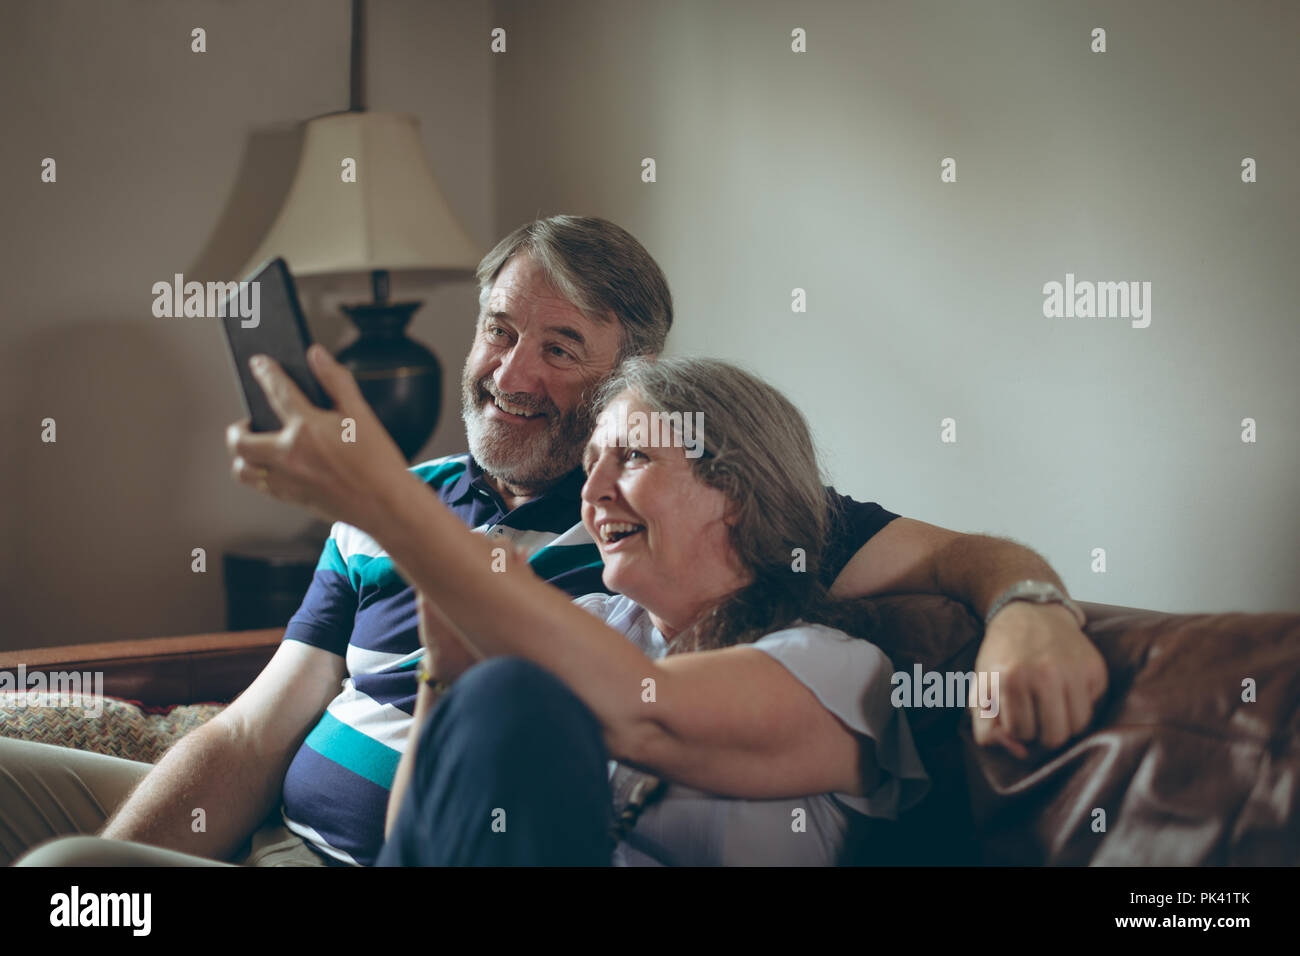 Senior couple taking selfie on mobile phone at home - Stock Image